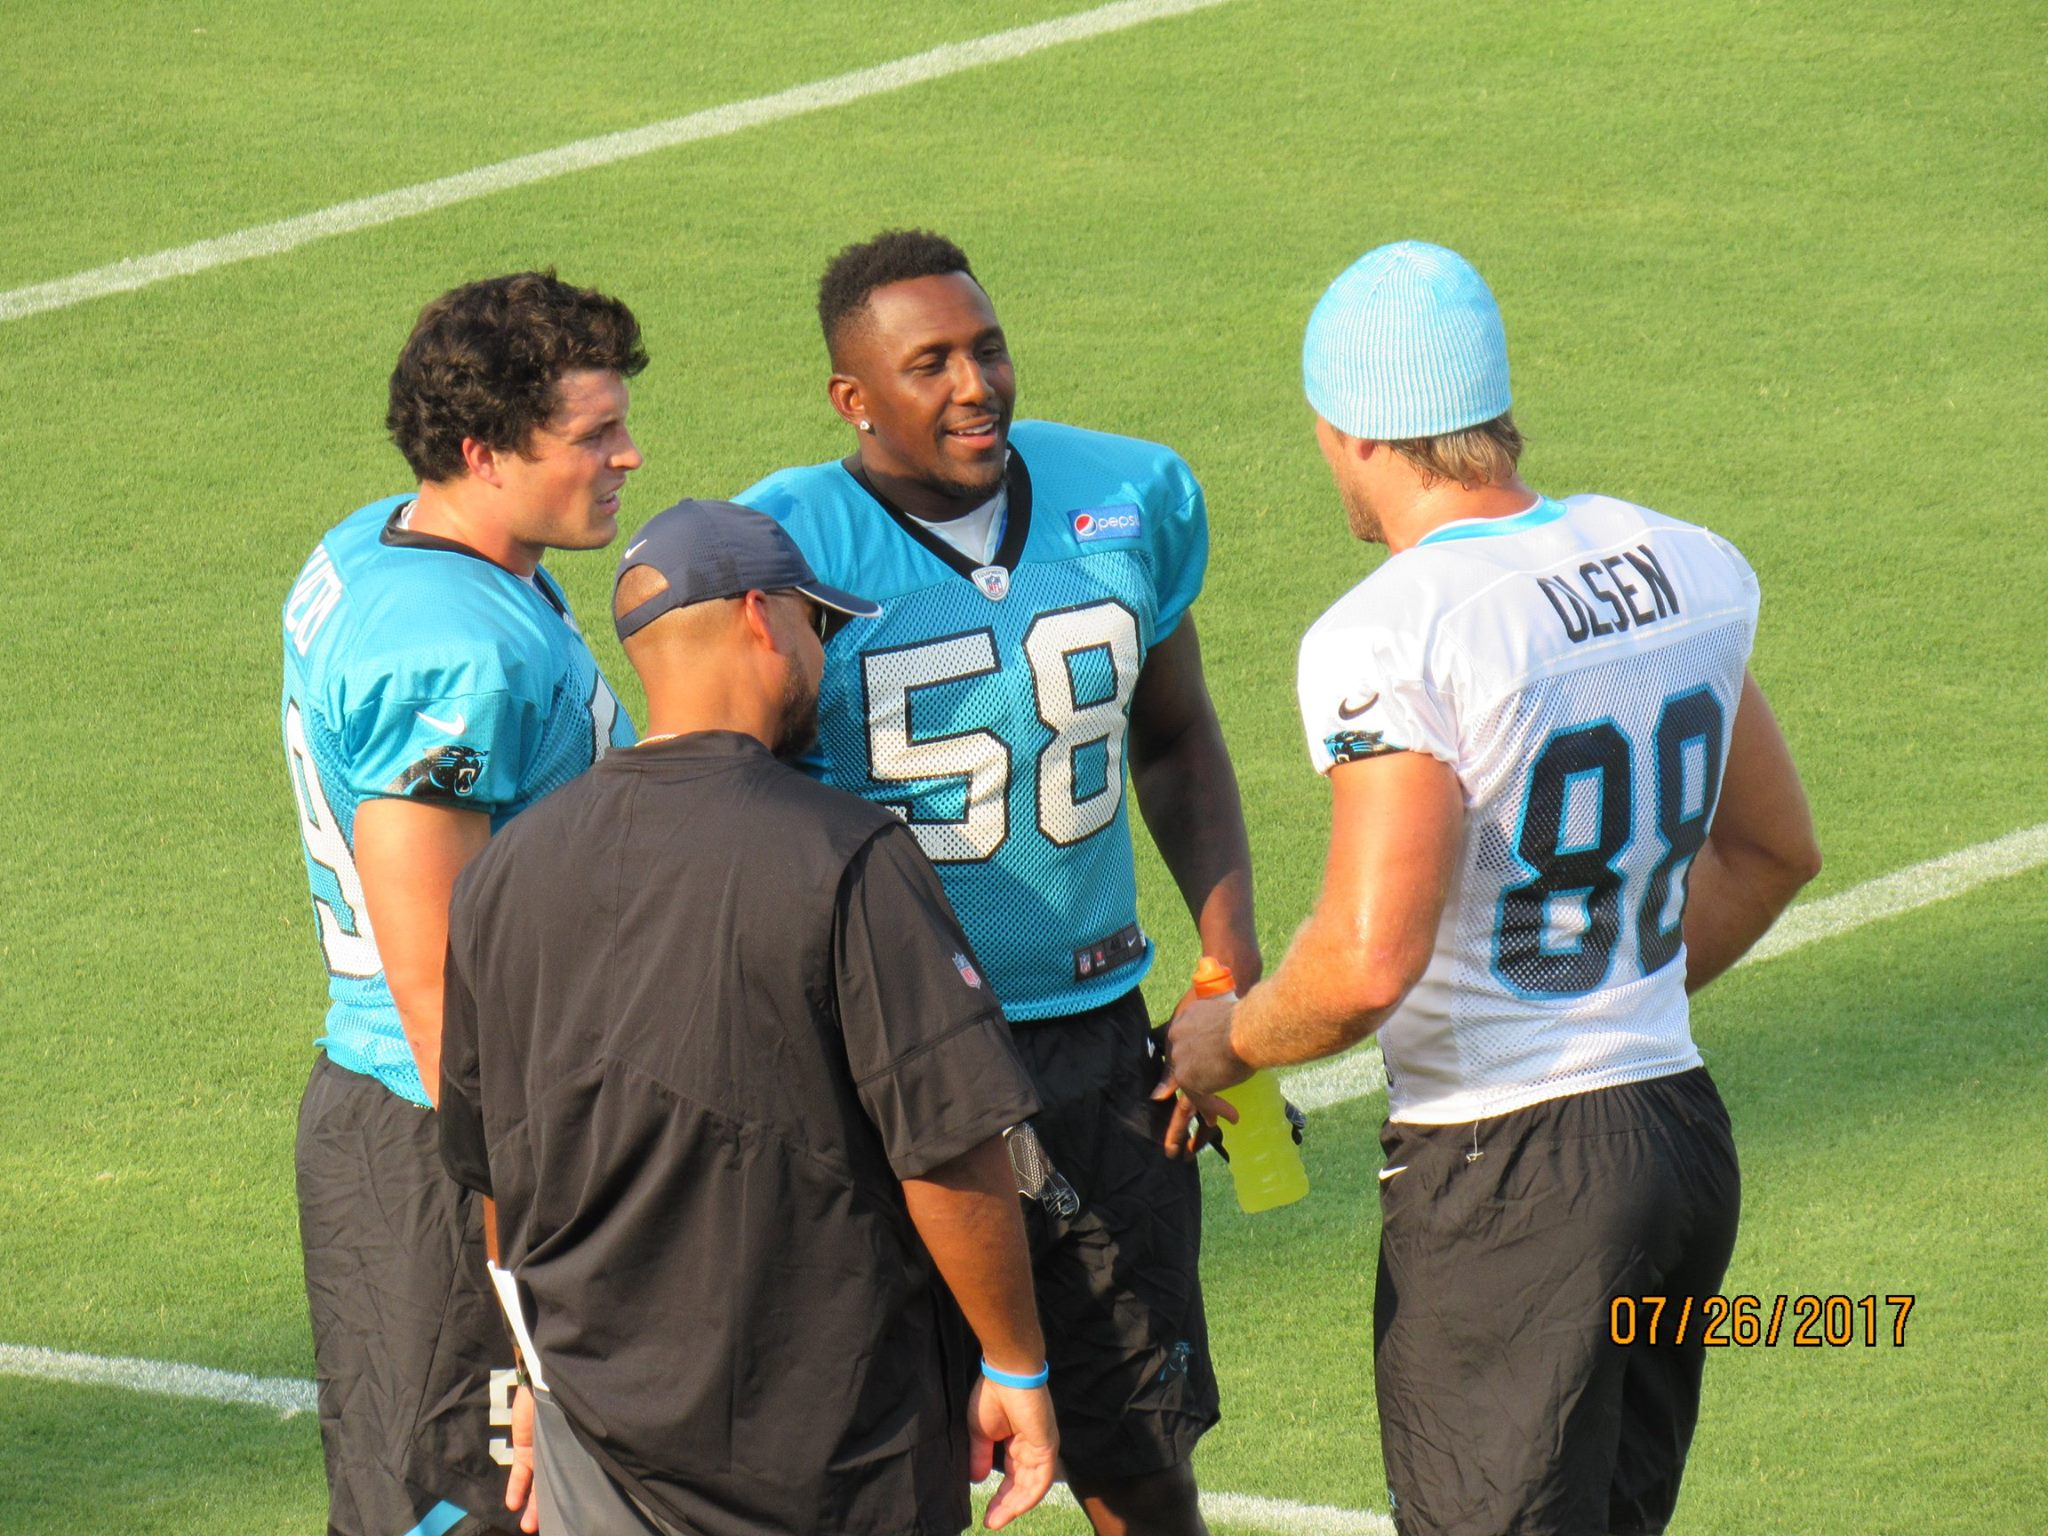 Panthers practice 1